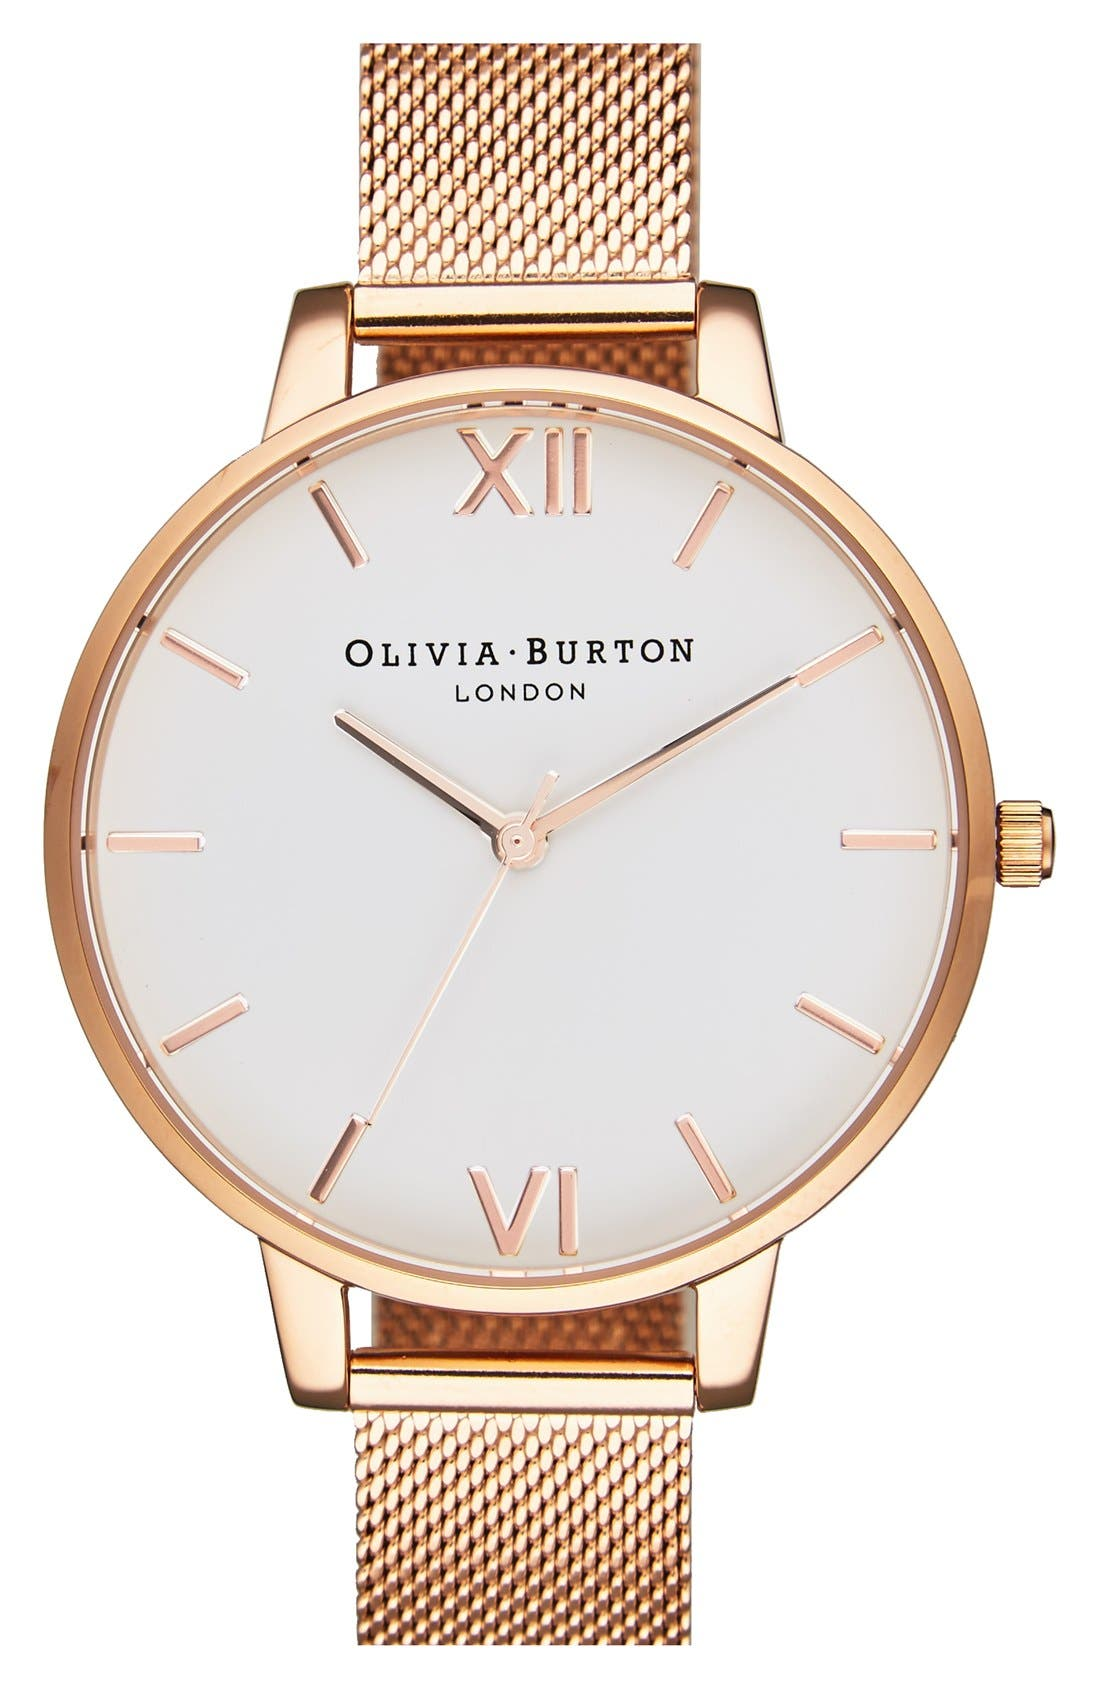 OLIVIA BURTON Big Dial Mesh Strap Watch, 38mm